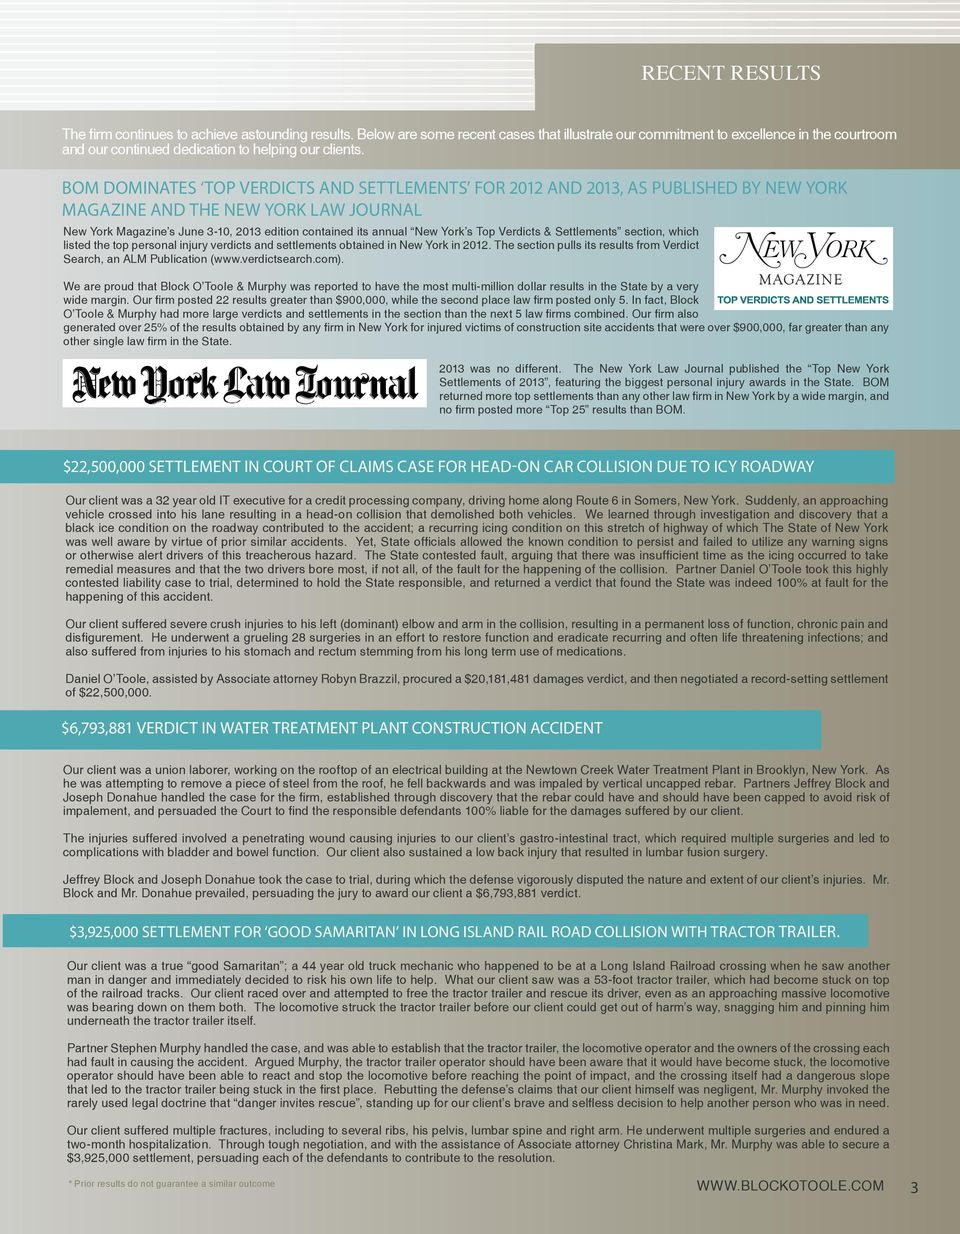 BOM DOMINATES TOP VERDICTS AND SETTLEMENTS FOR 2012 AND 2013, AS PUBLISHED BY NEW YORK MAGAZINE AND THE NEW YORK LAW JOURNAL New York Magazine s June 3-10, 2013 edition contained its annual New York